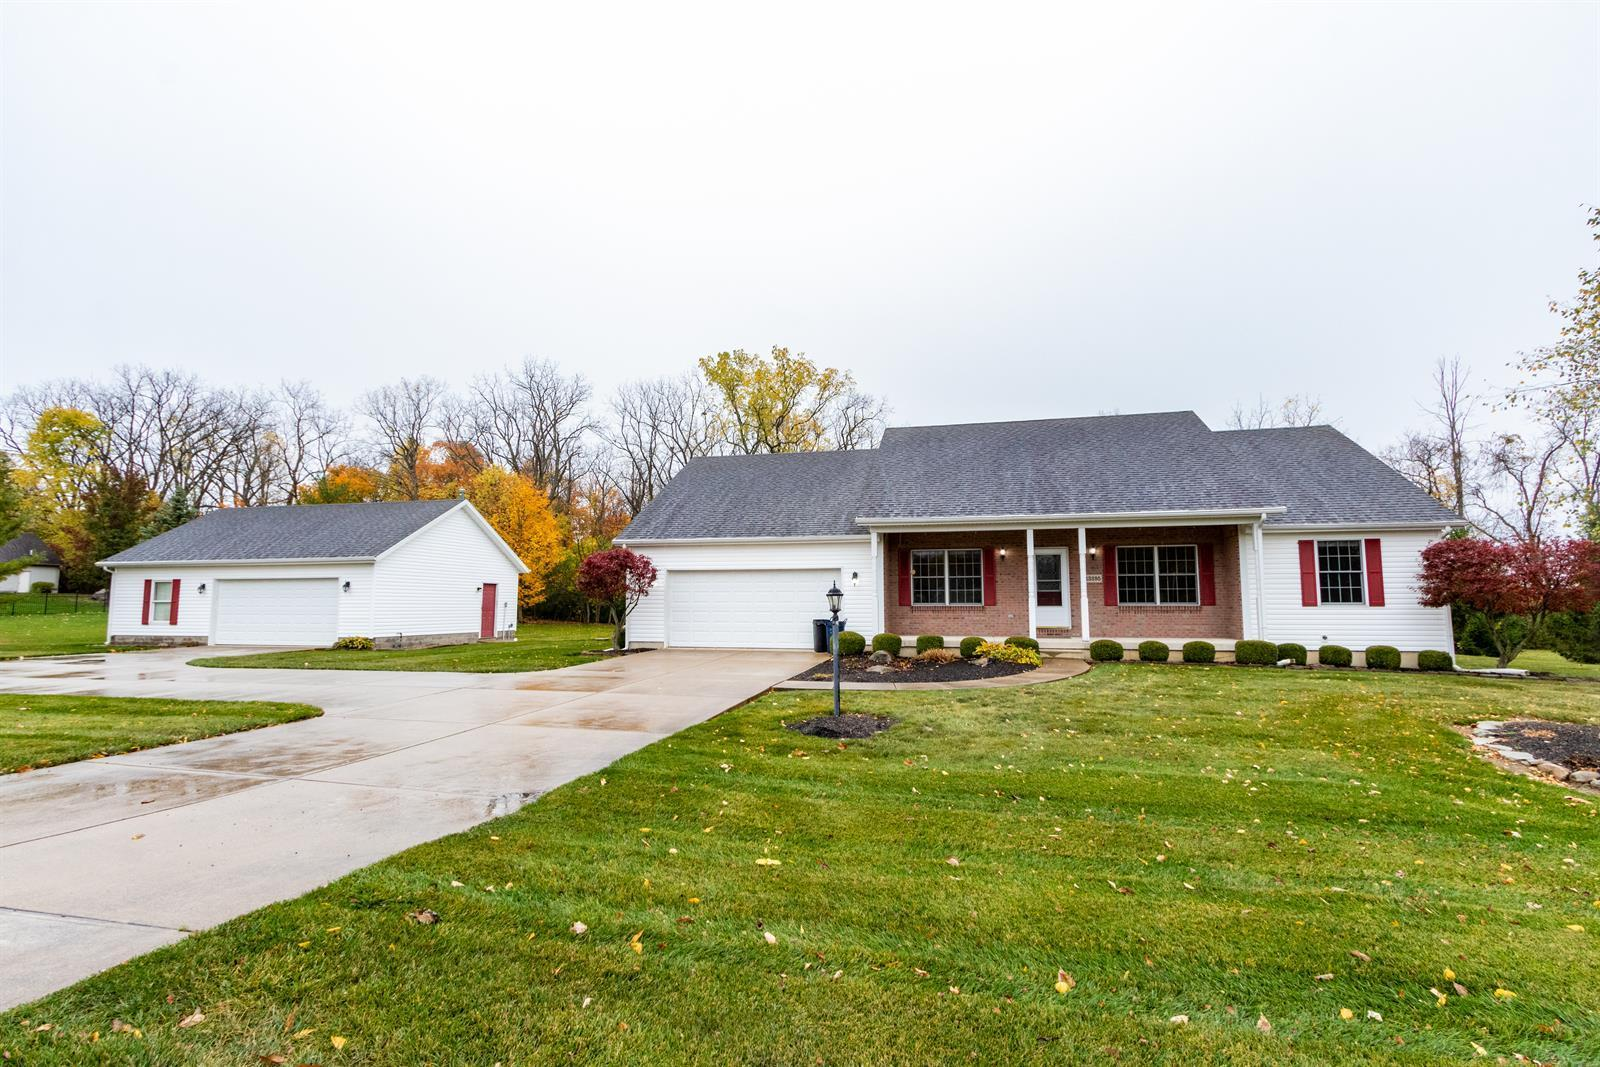 13295 Tammy Marie Lane Property Photo - Saint Paris, OH real estate listing